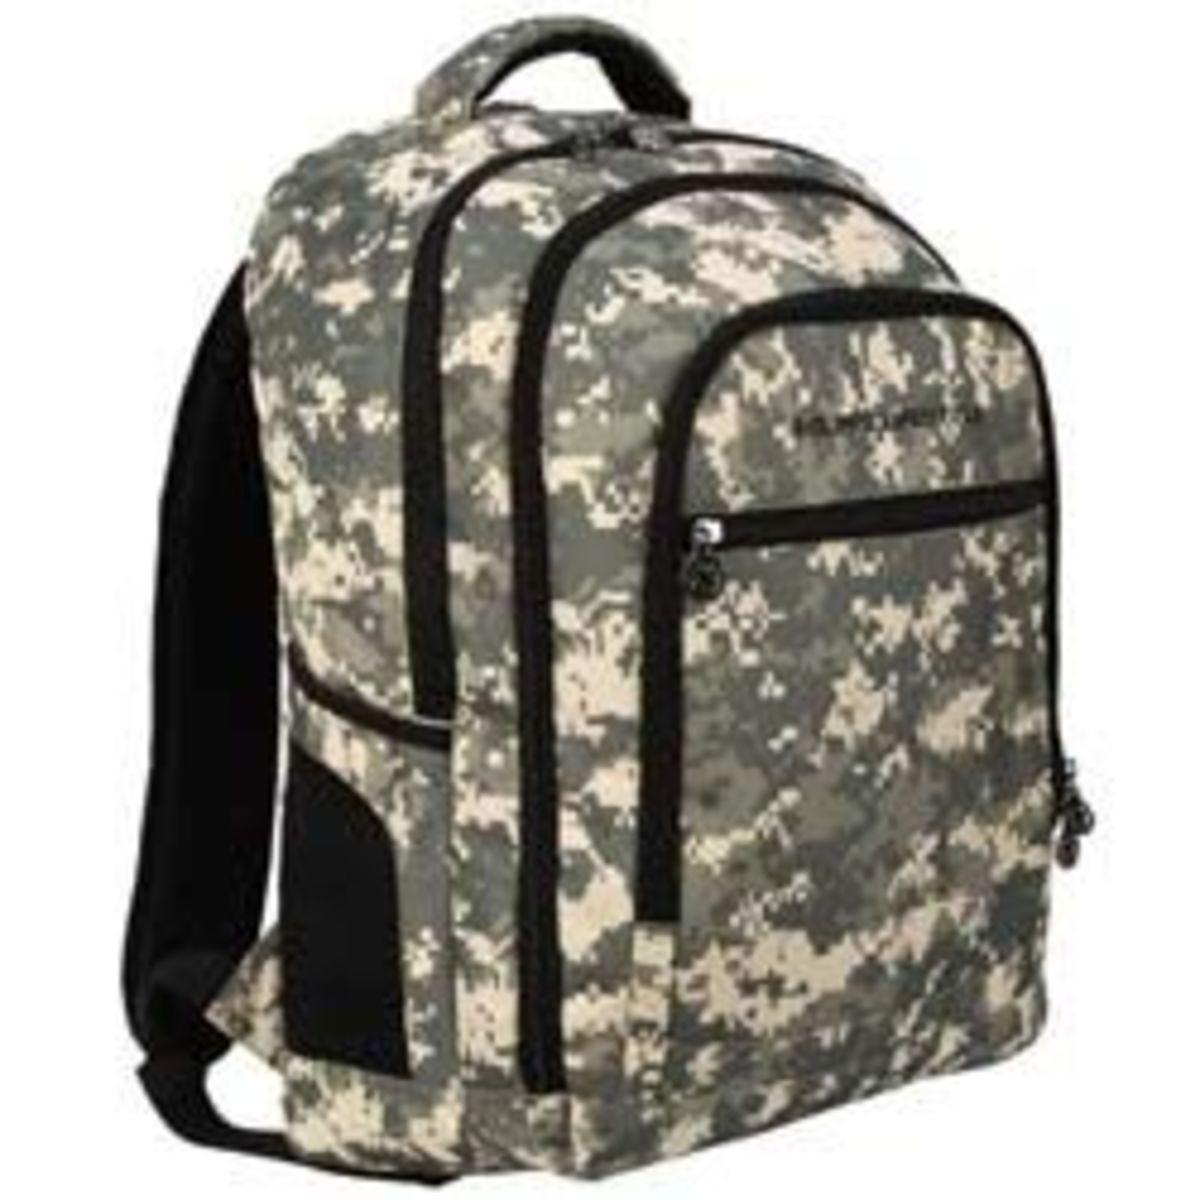 camouflage-back-to-school-accessories